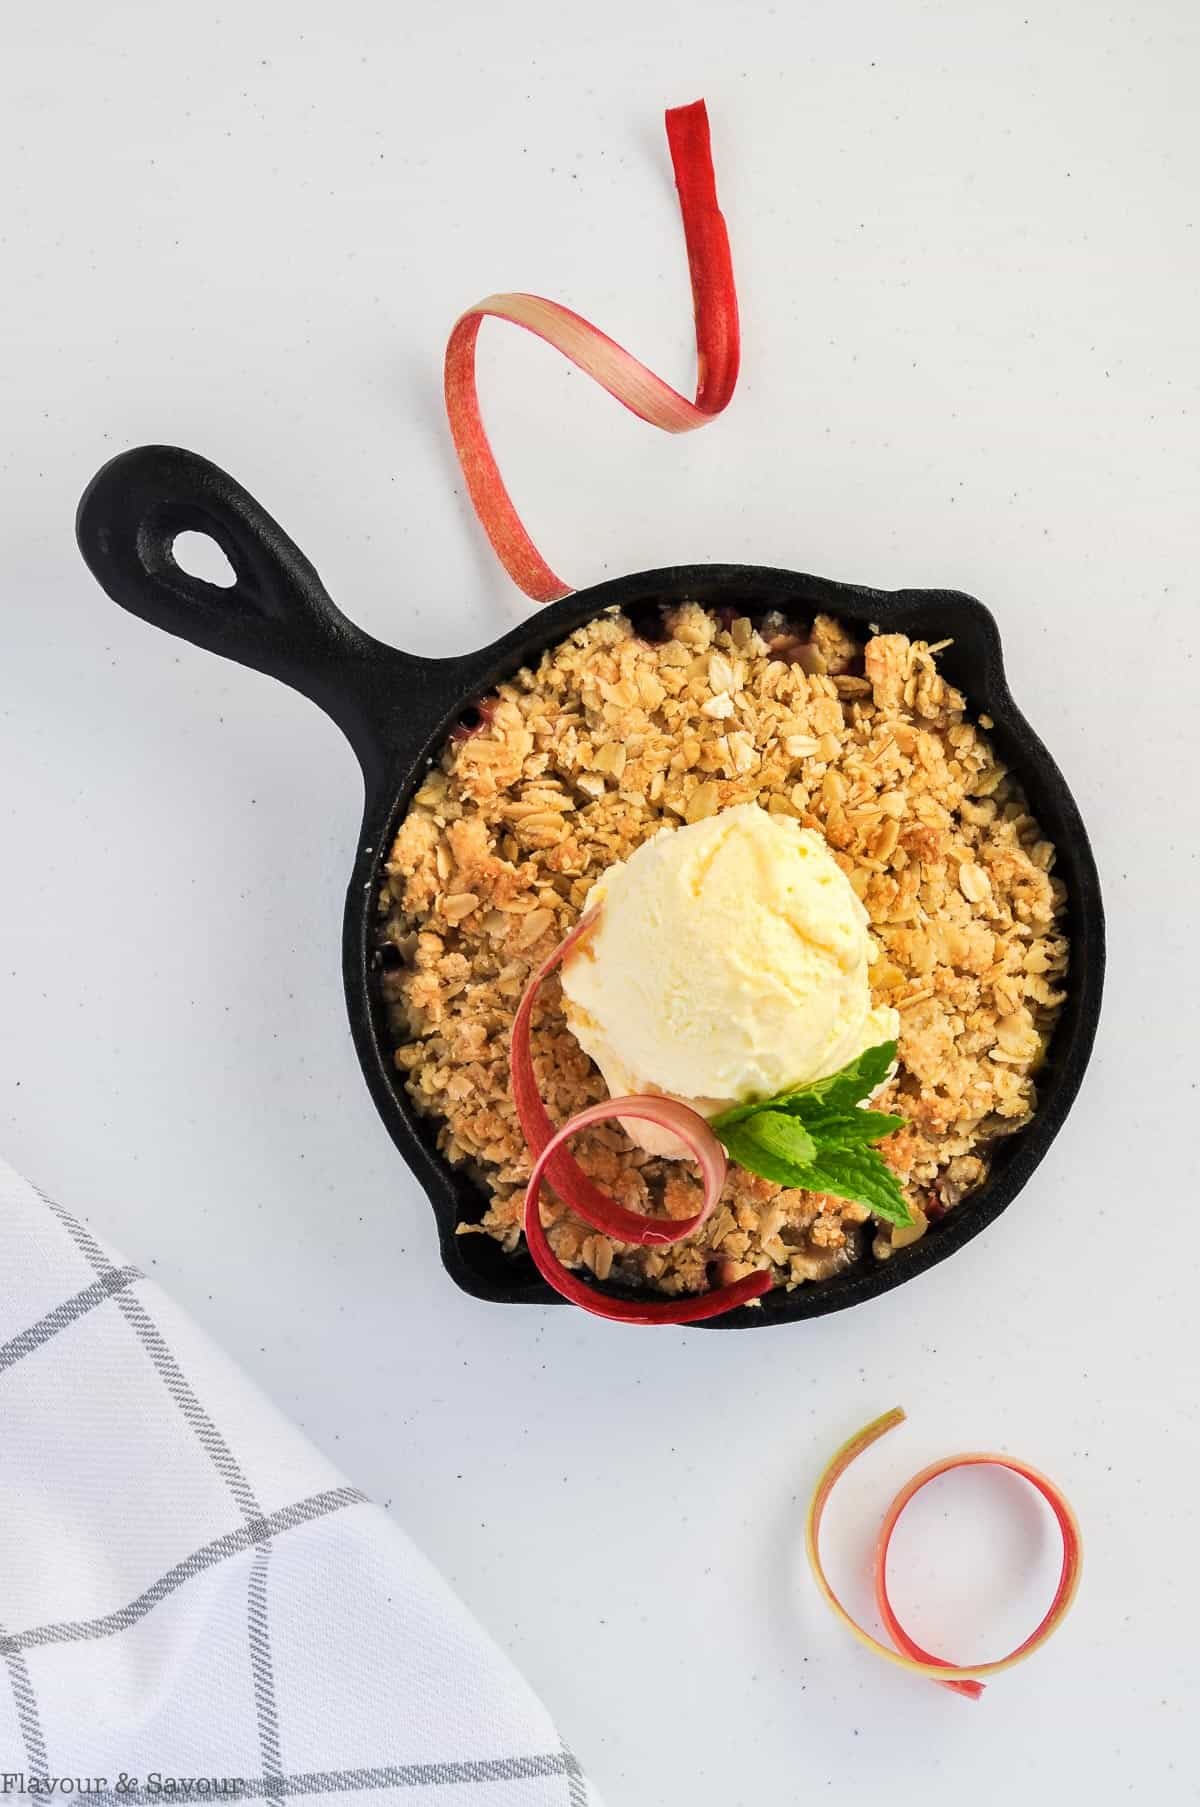 one mini skillet with Pineapple Rhubarb Crisp